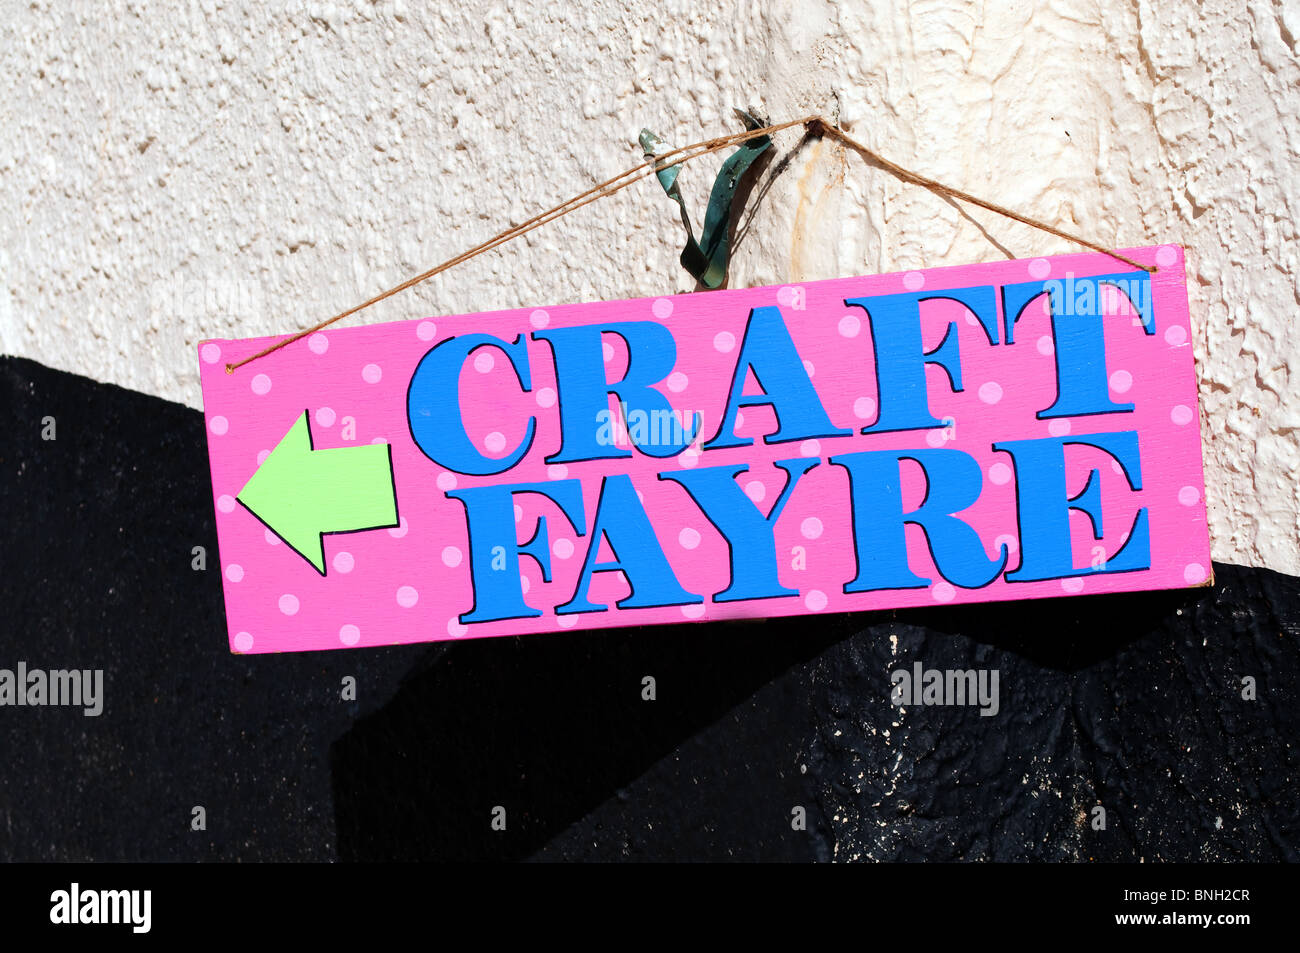 a craft fayre sign - Stock Image